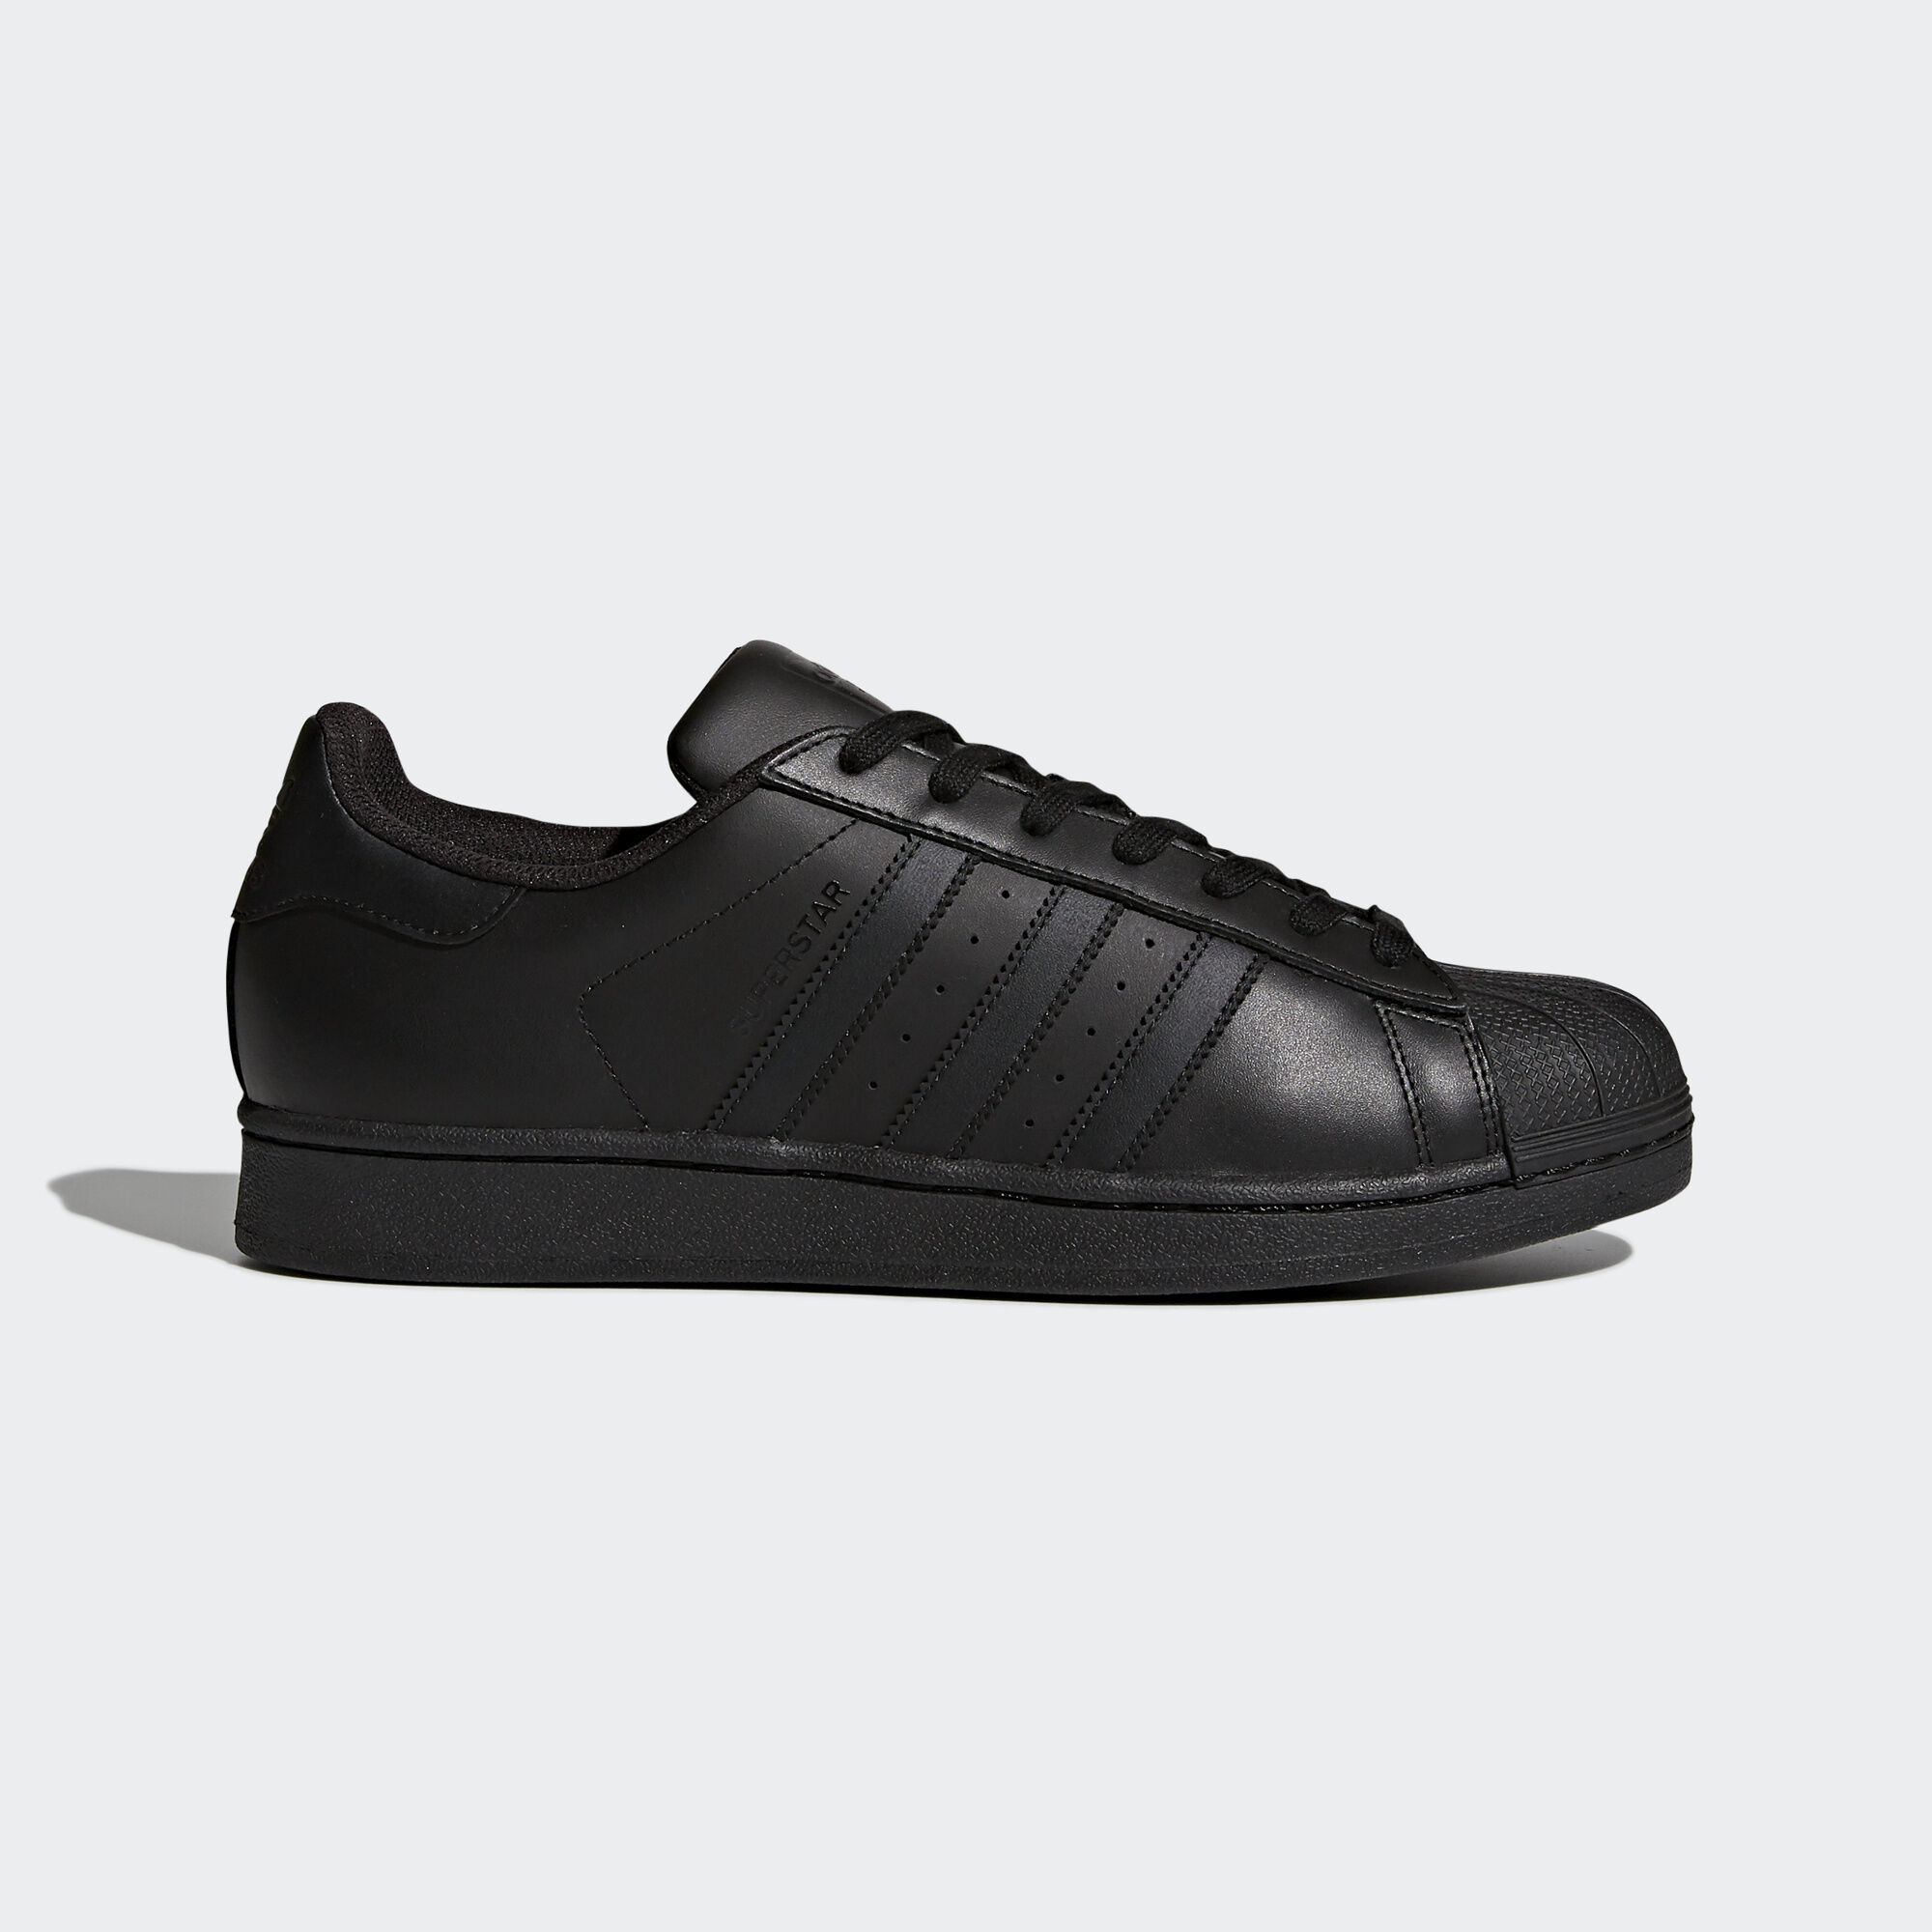 Superstar Slip On Shoes Cheap Adidas